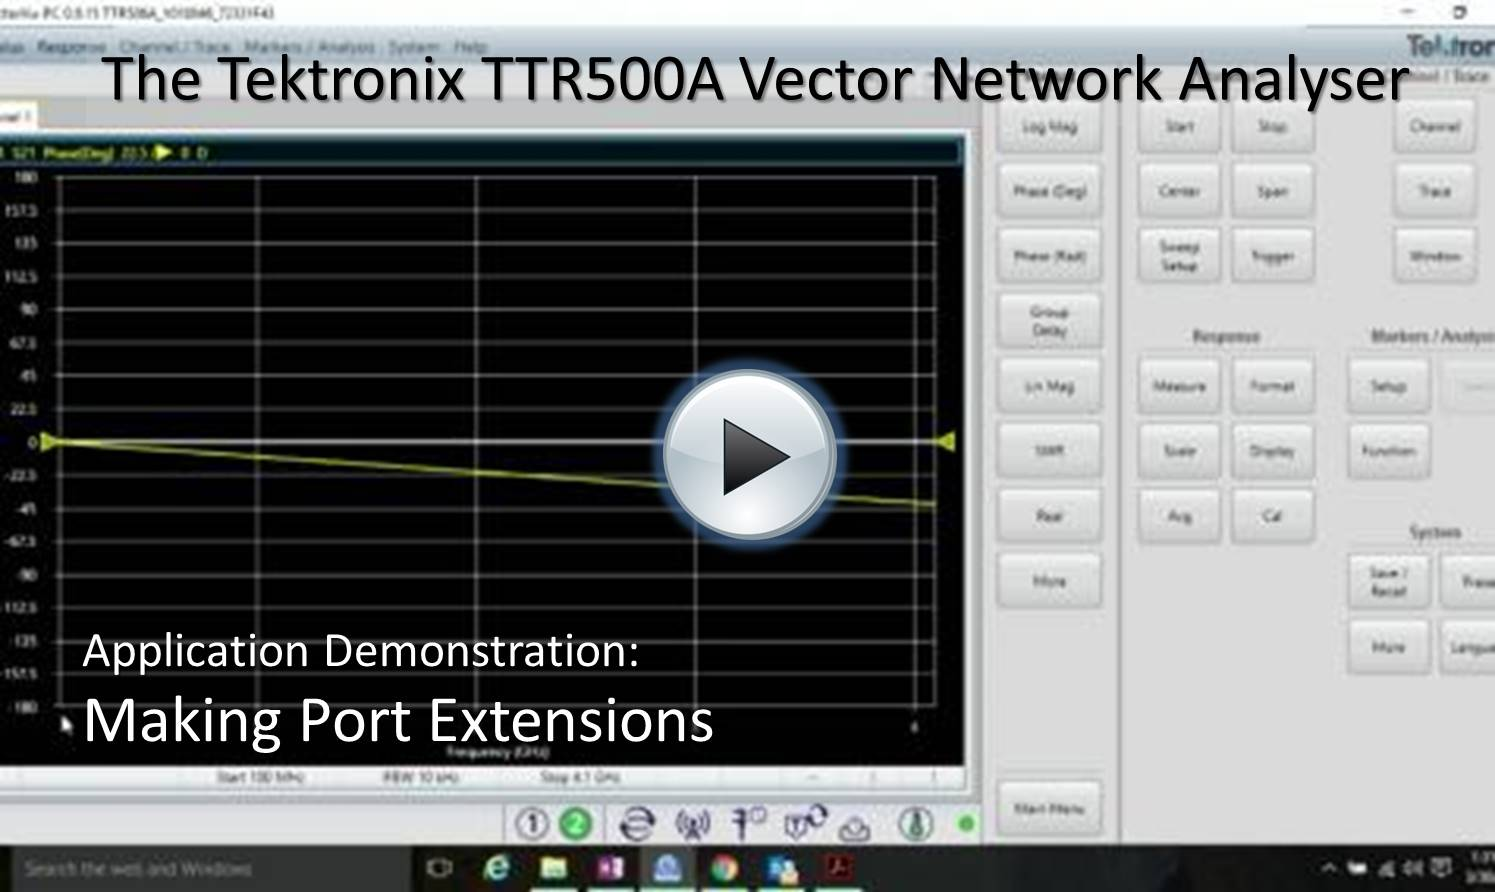 TTR500A_Apps_Demo_Making_Port_Extensions